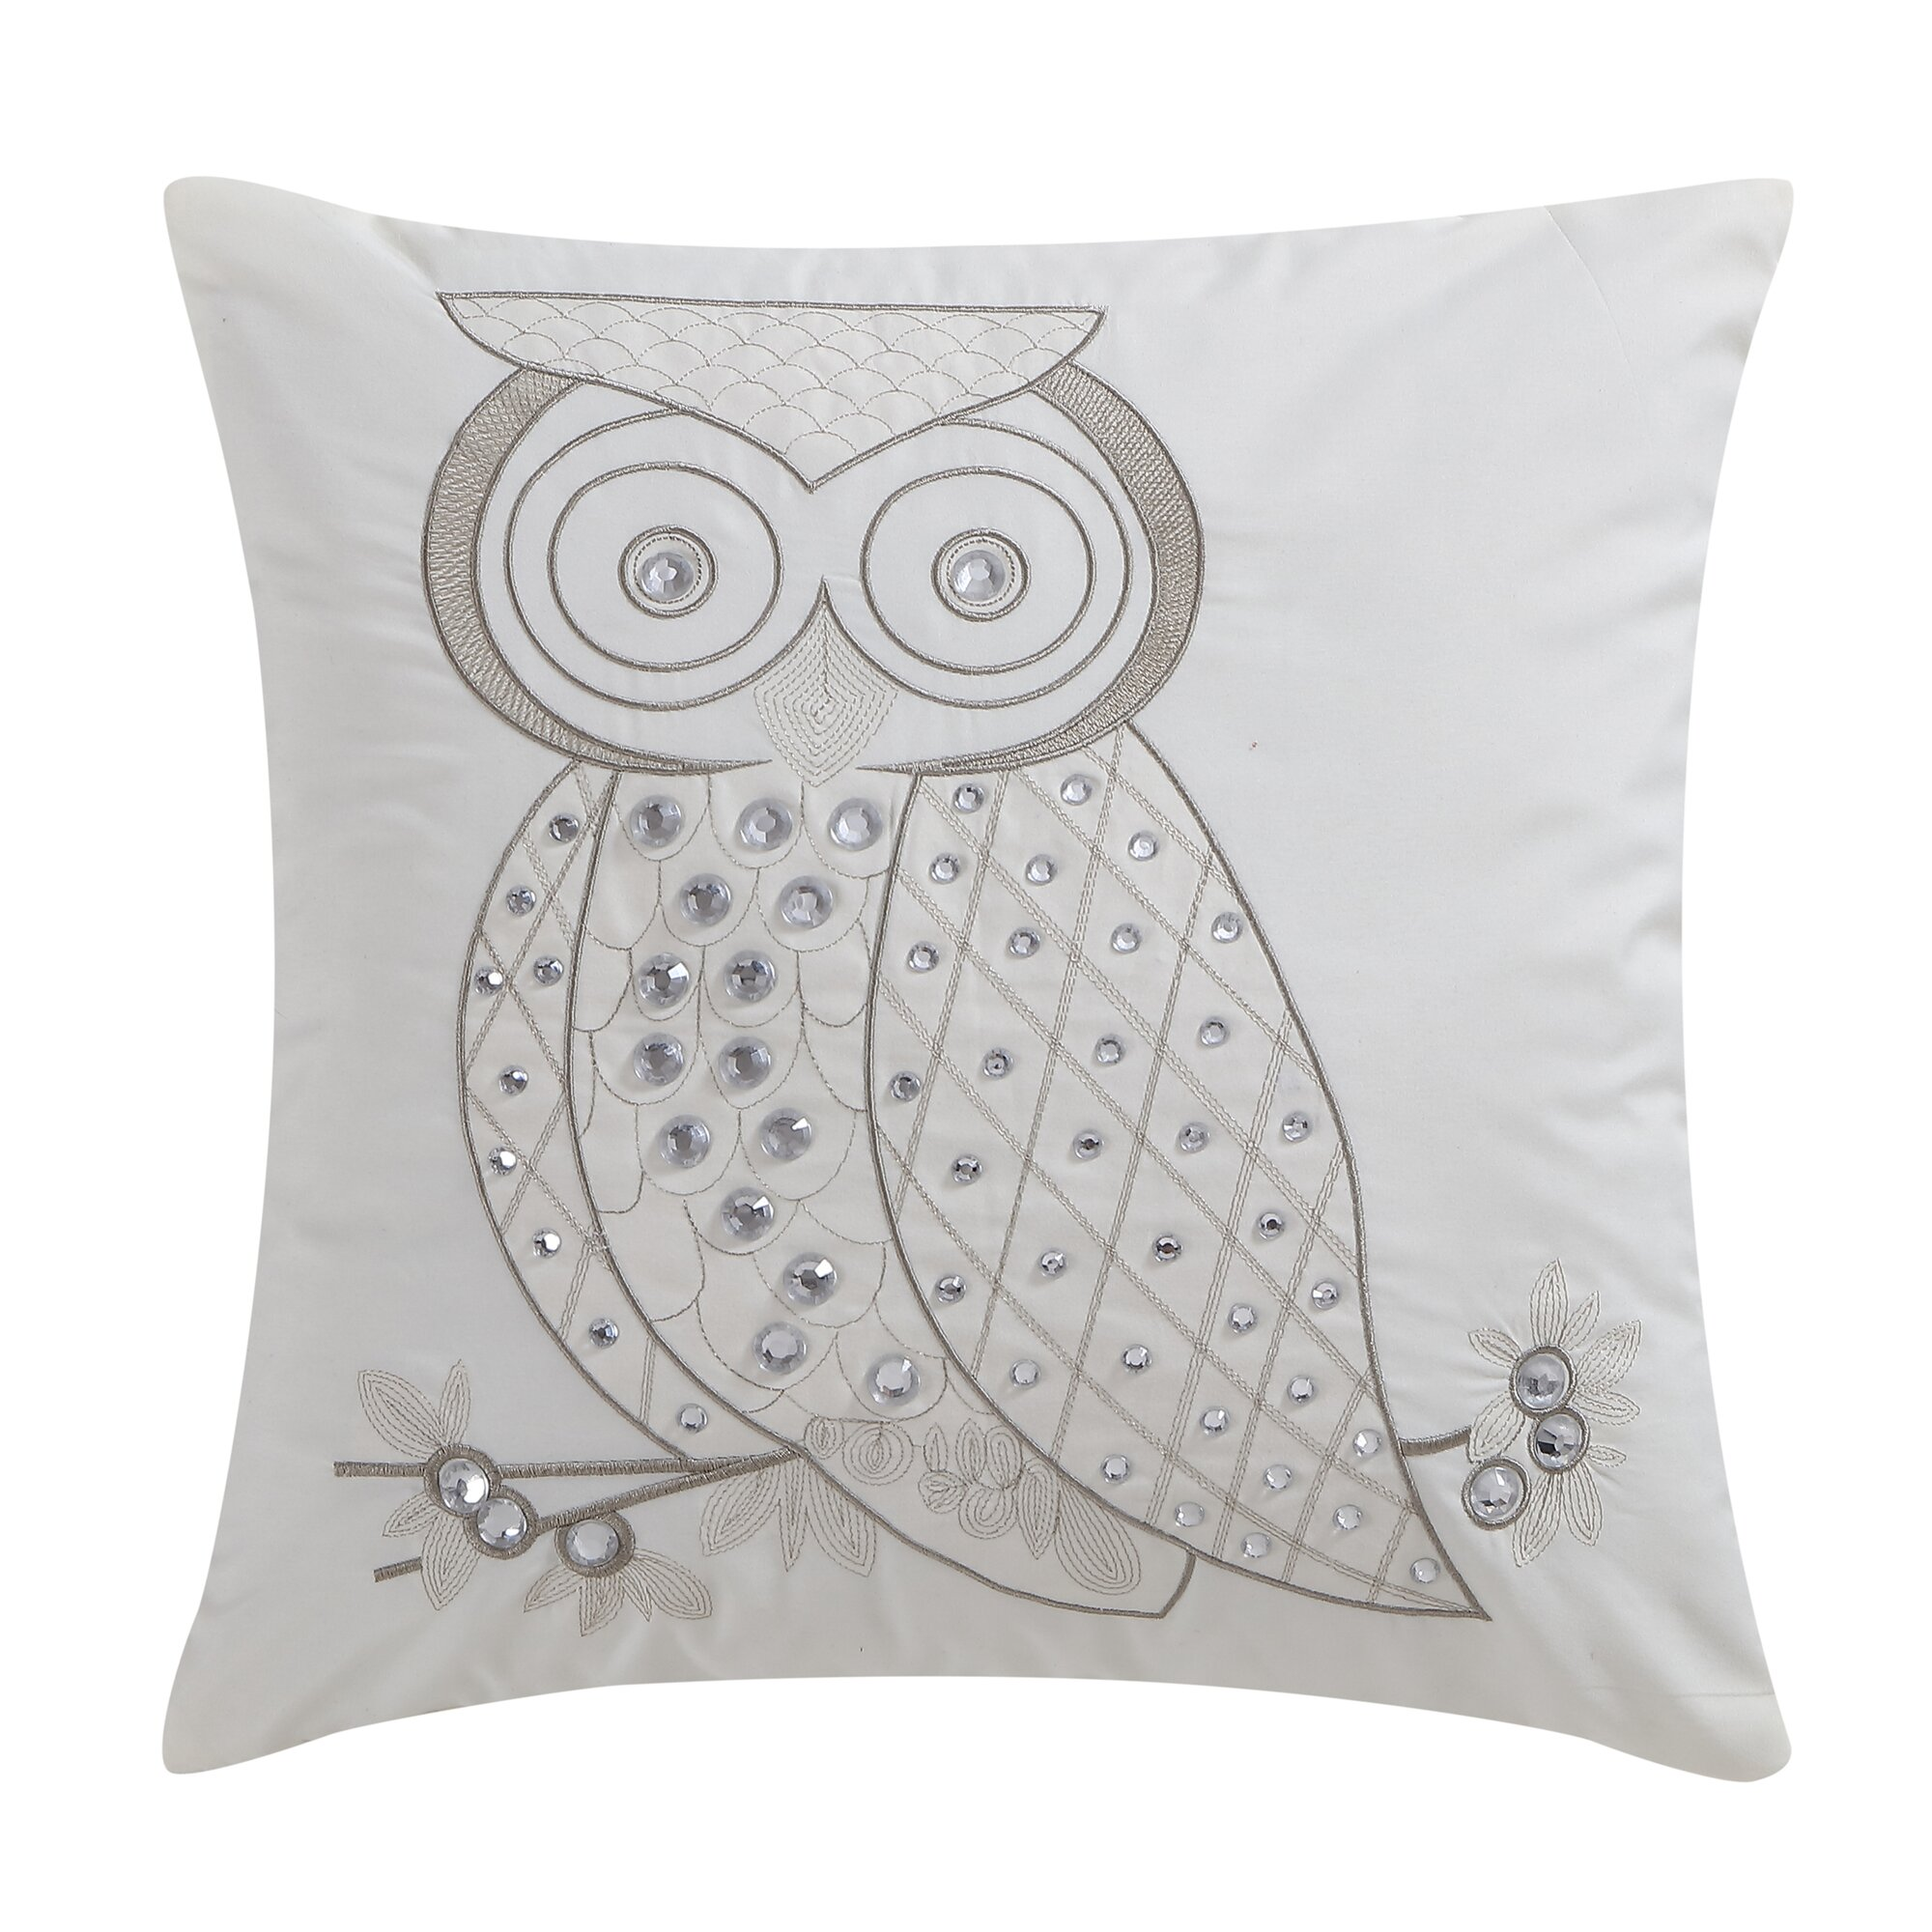 Decorative Jeweled Pillows : Harriet Bee Agustin Owl Jeweled Decorative Throw Pillow & Reviews Wayfair.ca